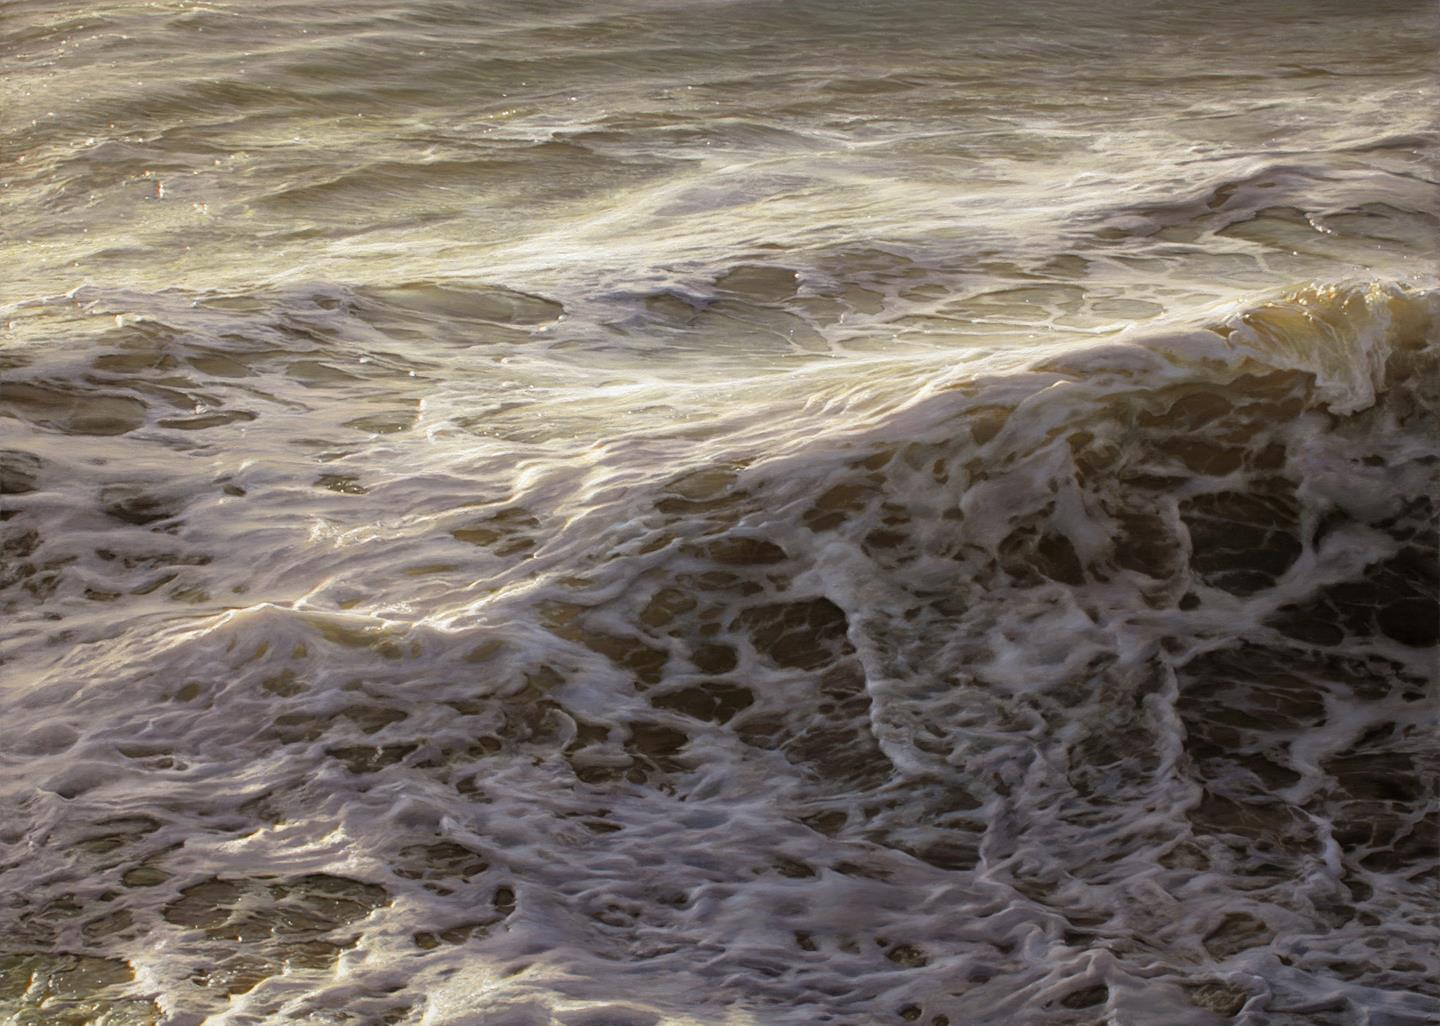 Photo realistic Wave Painting by Ran Ortner